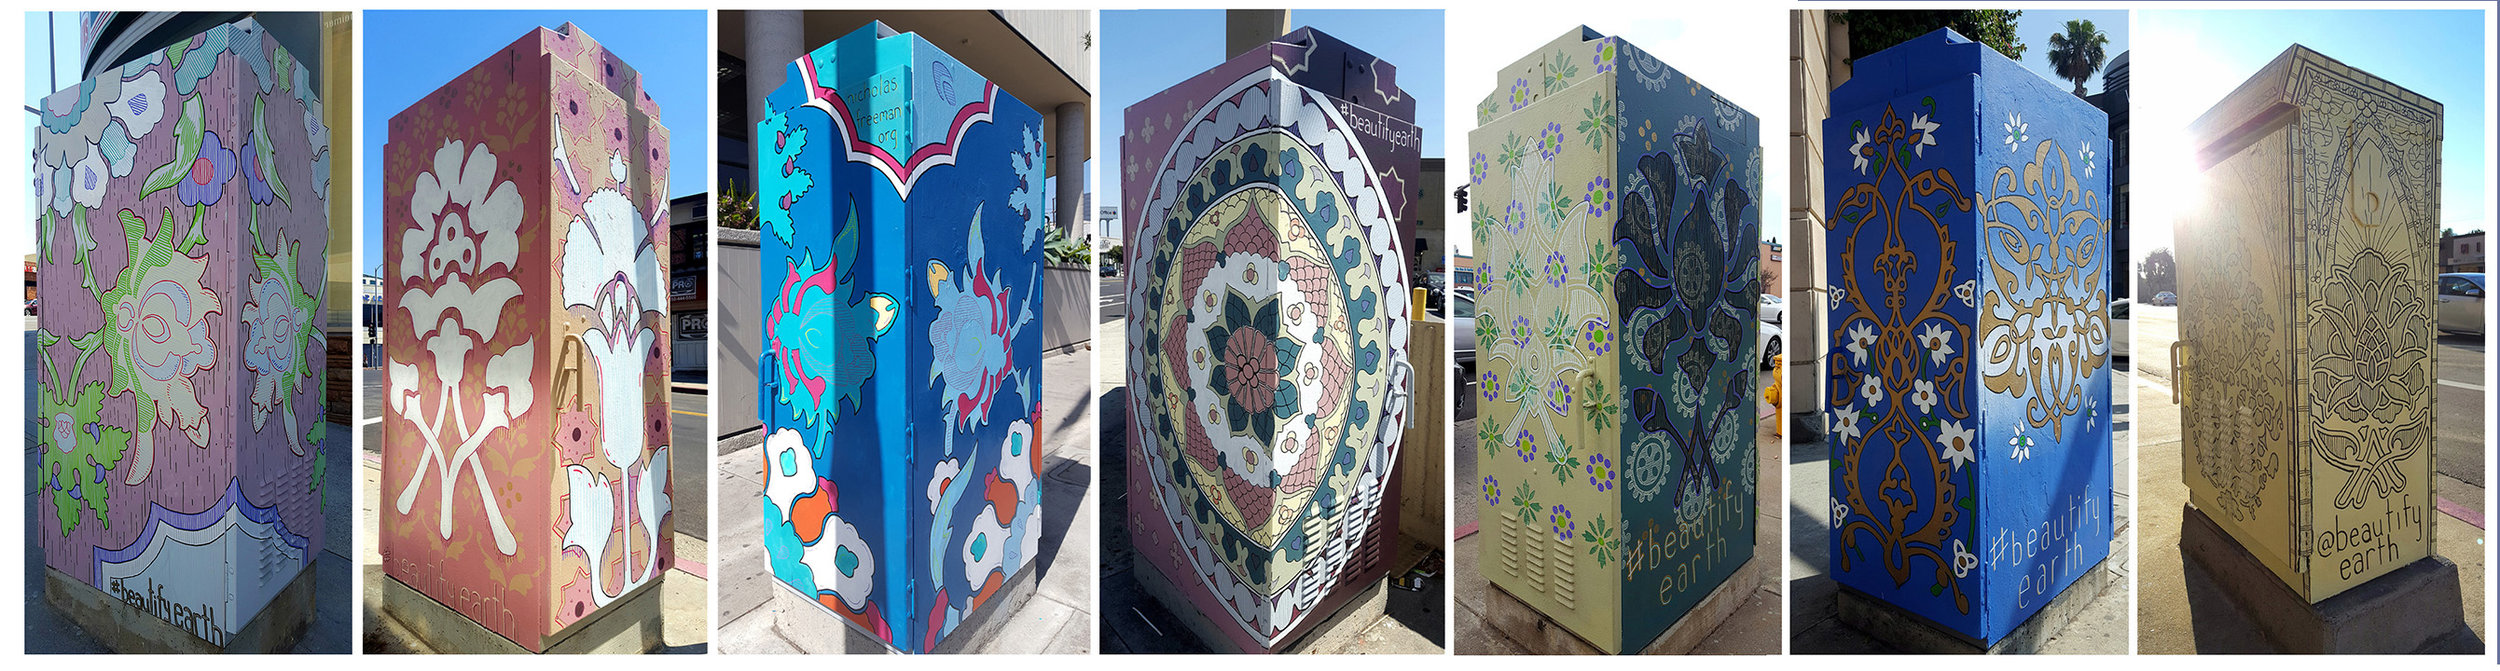 "Painted utility boxes 72"" x 33"" x 24"" Commissioned by the City Council to celebrate the Persian community of Westwood Westwood Blvd, Los Angeles, CA"